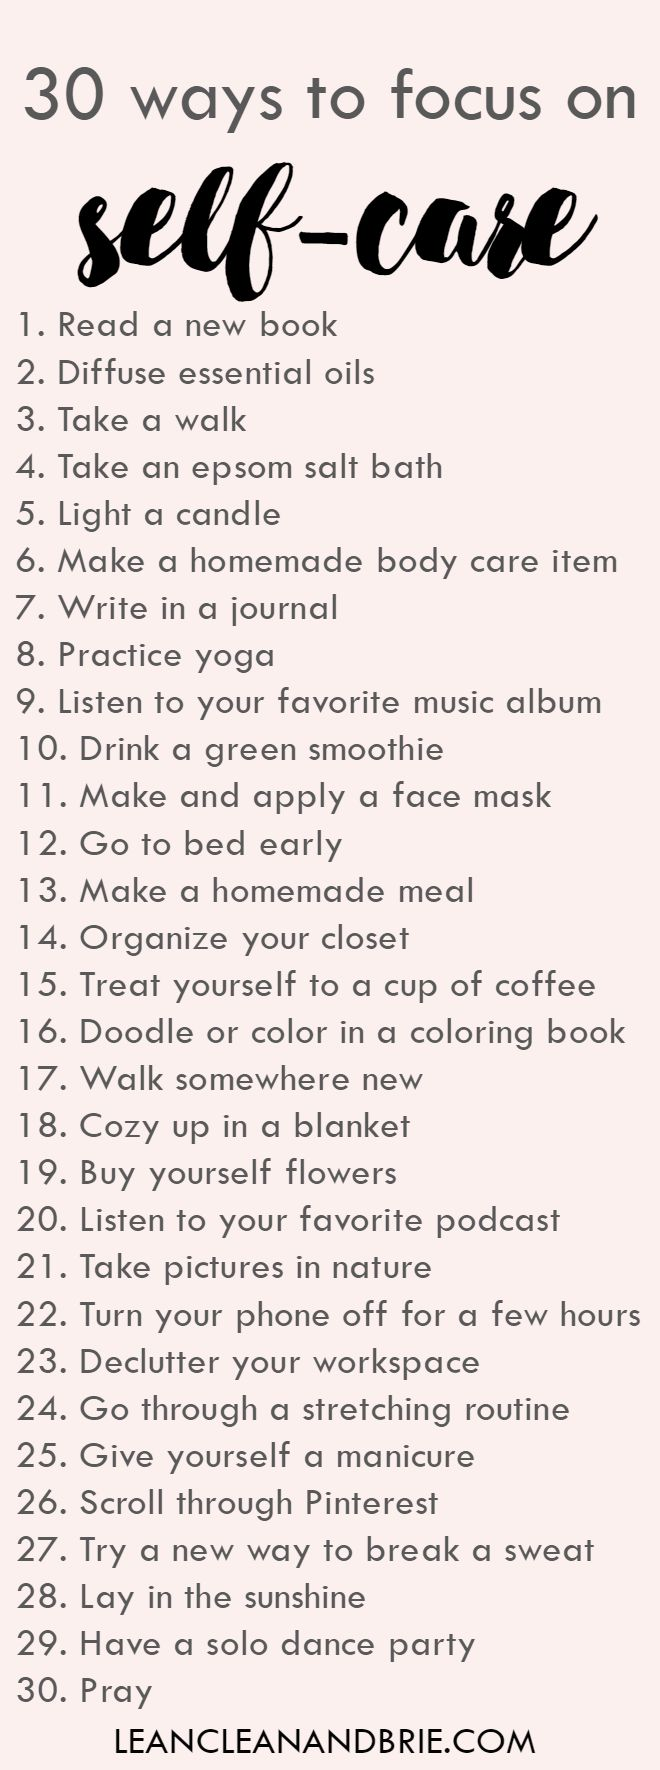 Pinterest: iamtaylorjess | 30 ways to focus on self-care | Simple ways to take care of yourself | via Lean, Clean, & Brie